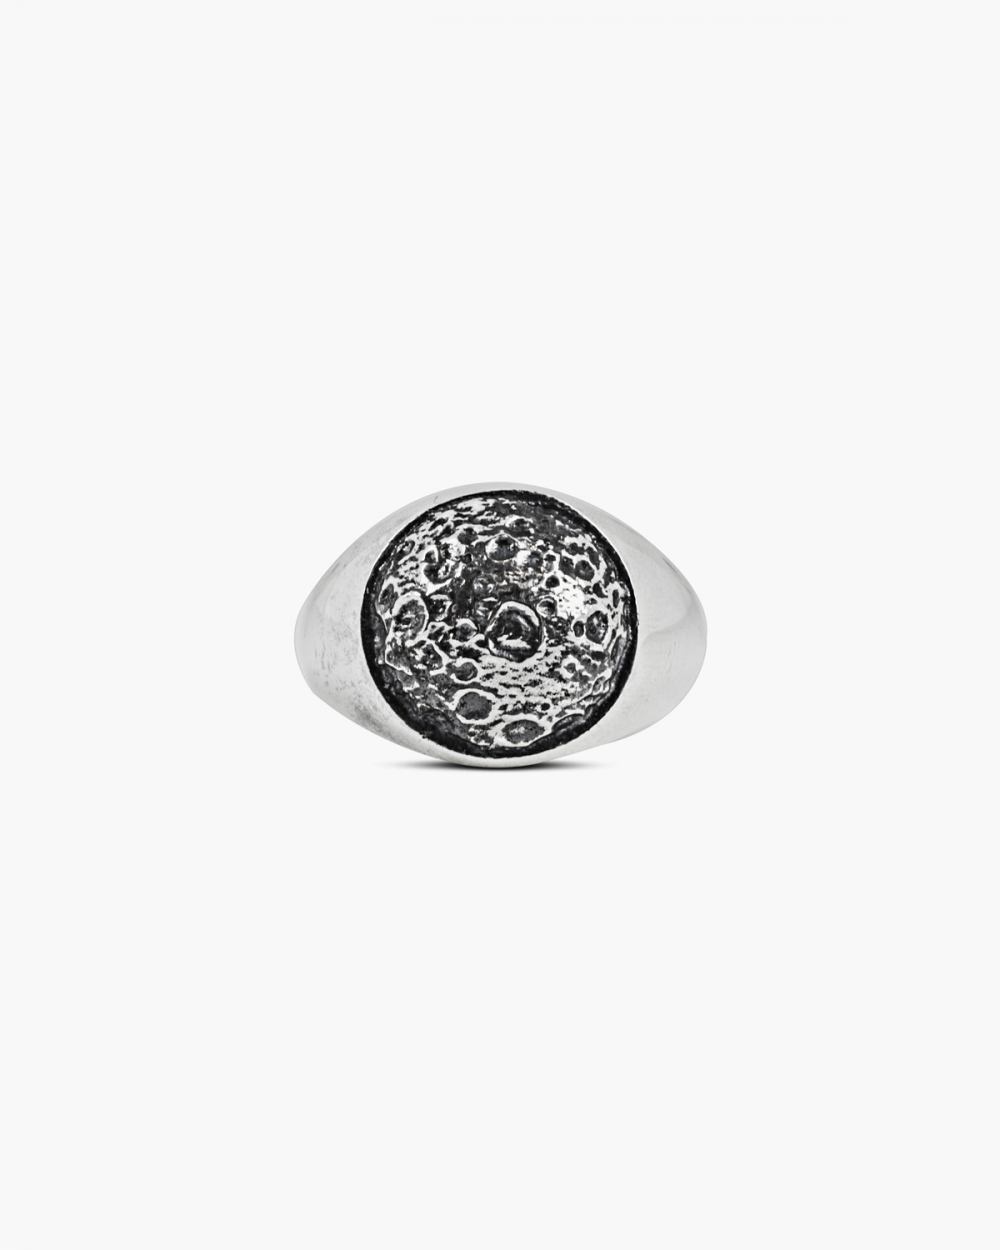 Archive Sale MOON SIGNET RING NOVE25